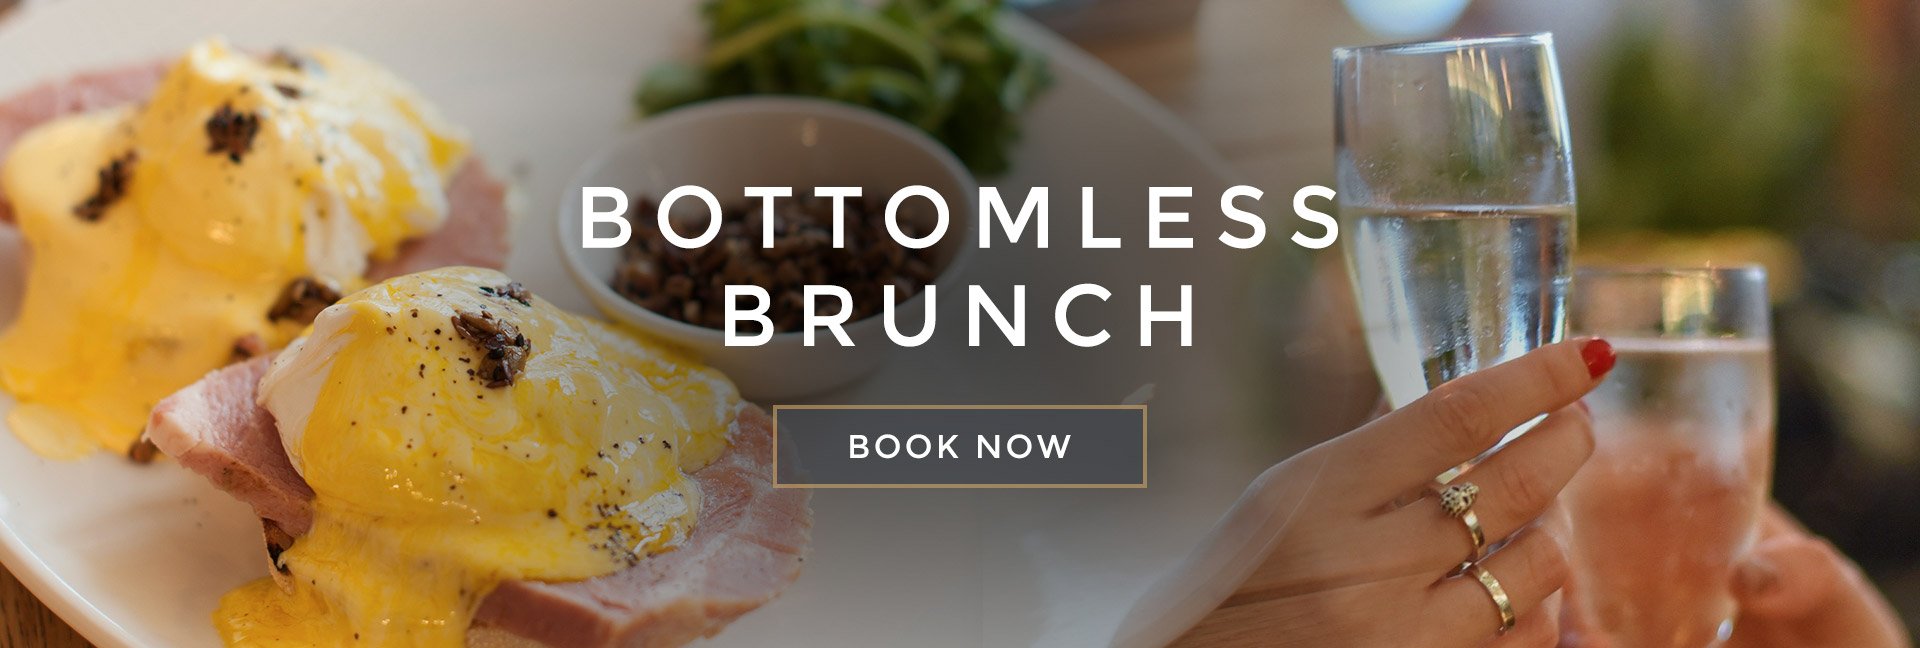 Bottomless Brunch at All Bar One Henrietta Street - Book now